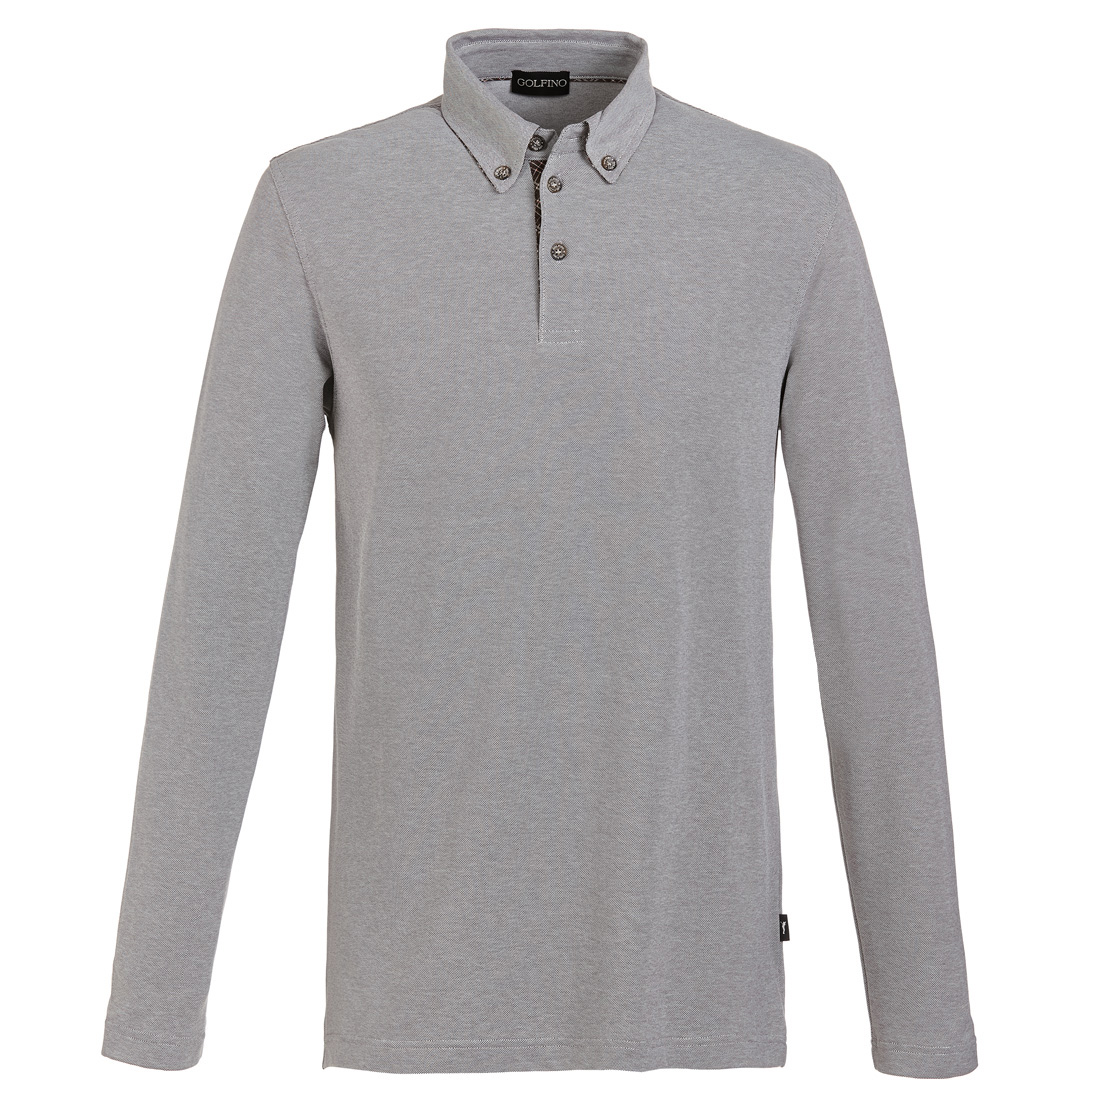 Sun Protection Herren Longsleeve Golfpolo mit Button-Down-Kragen